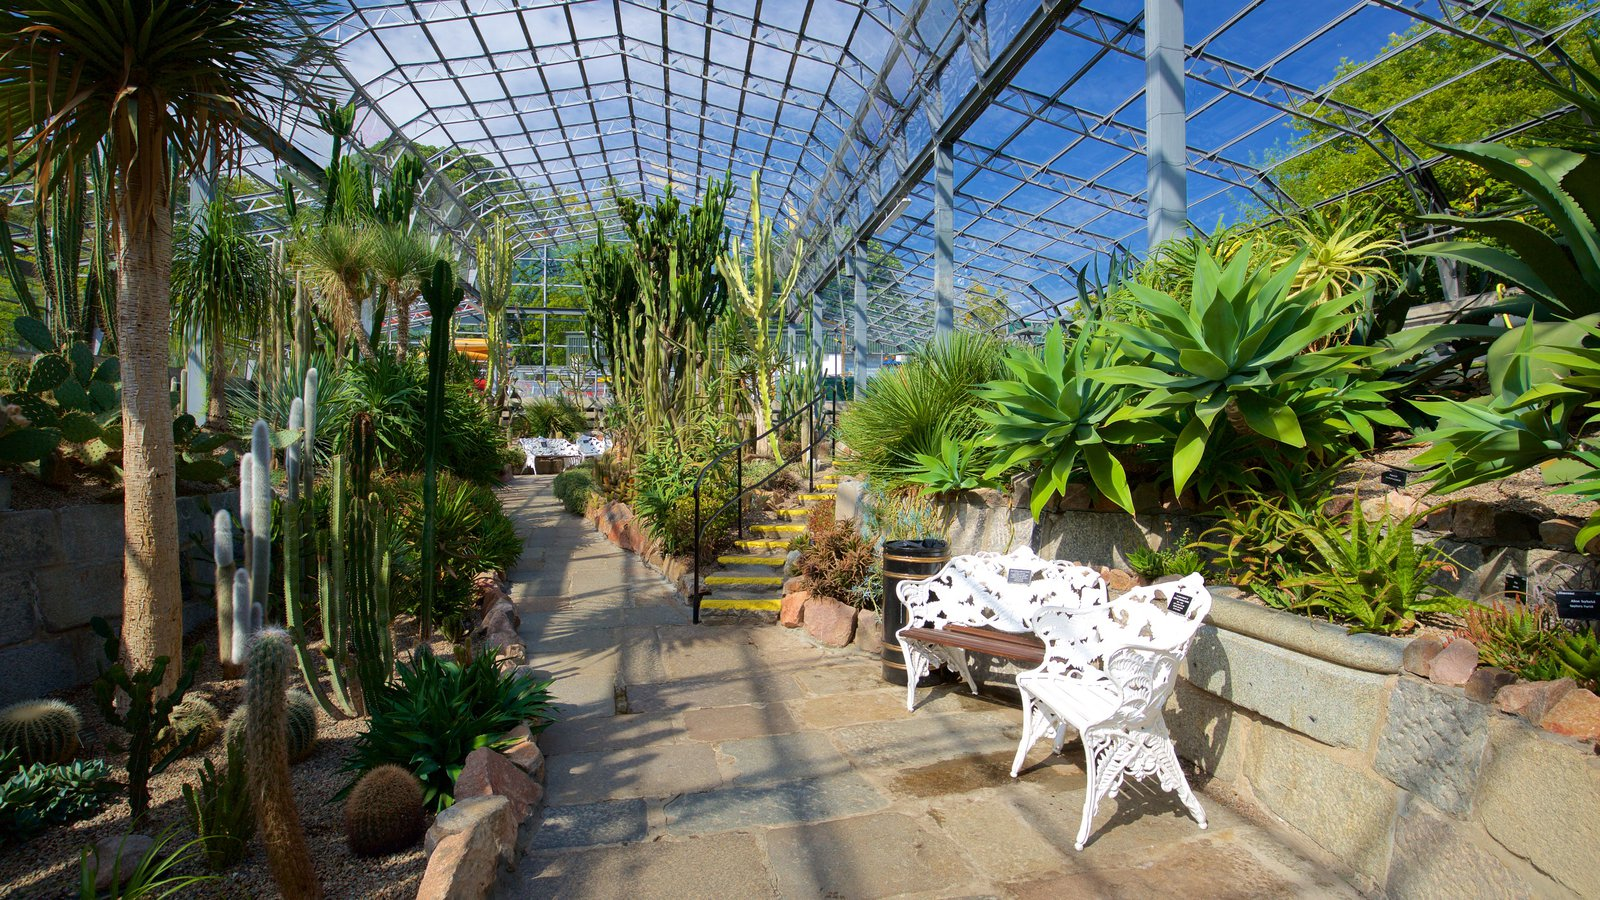 Duthie Park Winter Gardens which includes interior views and a garden